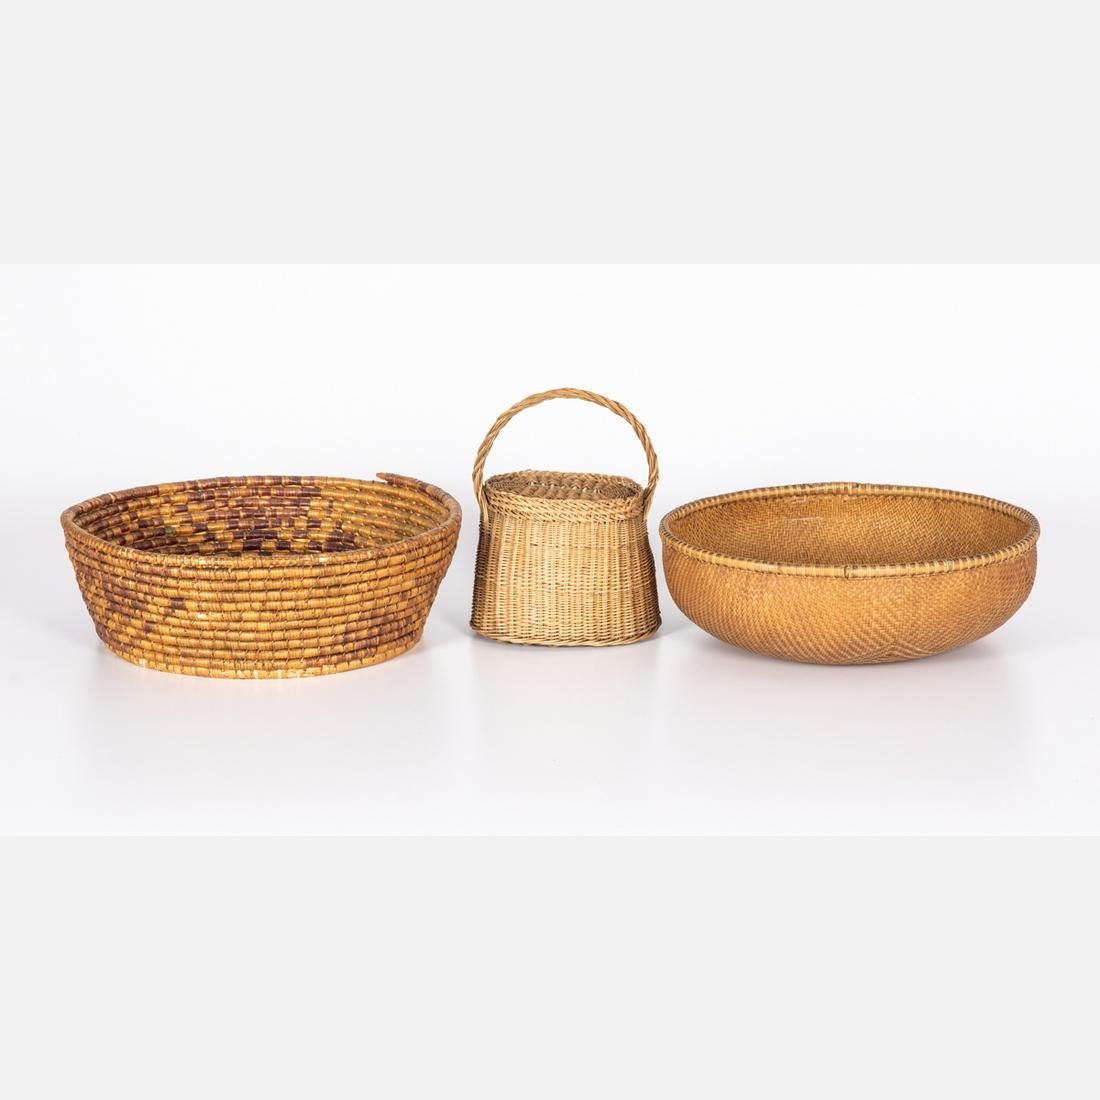 A Group of Three Antique Baskets, 19th/20th Century.